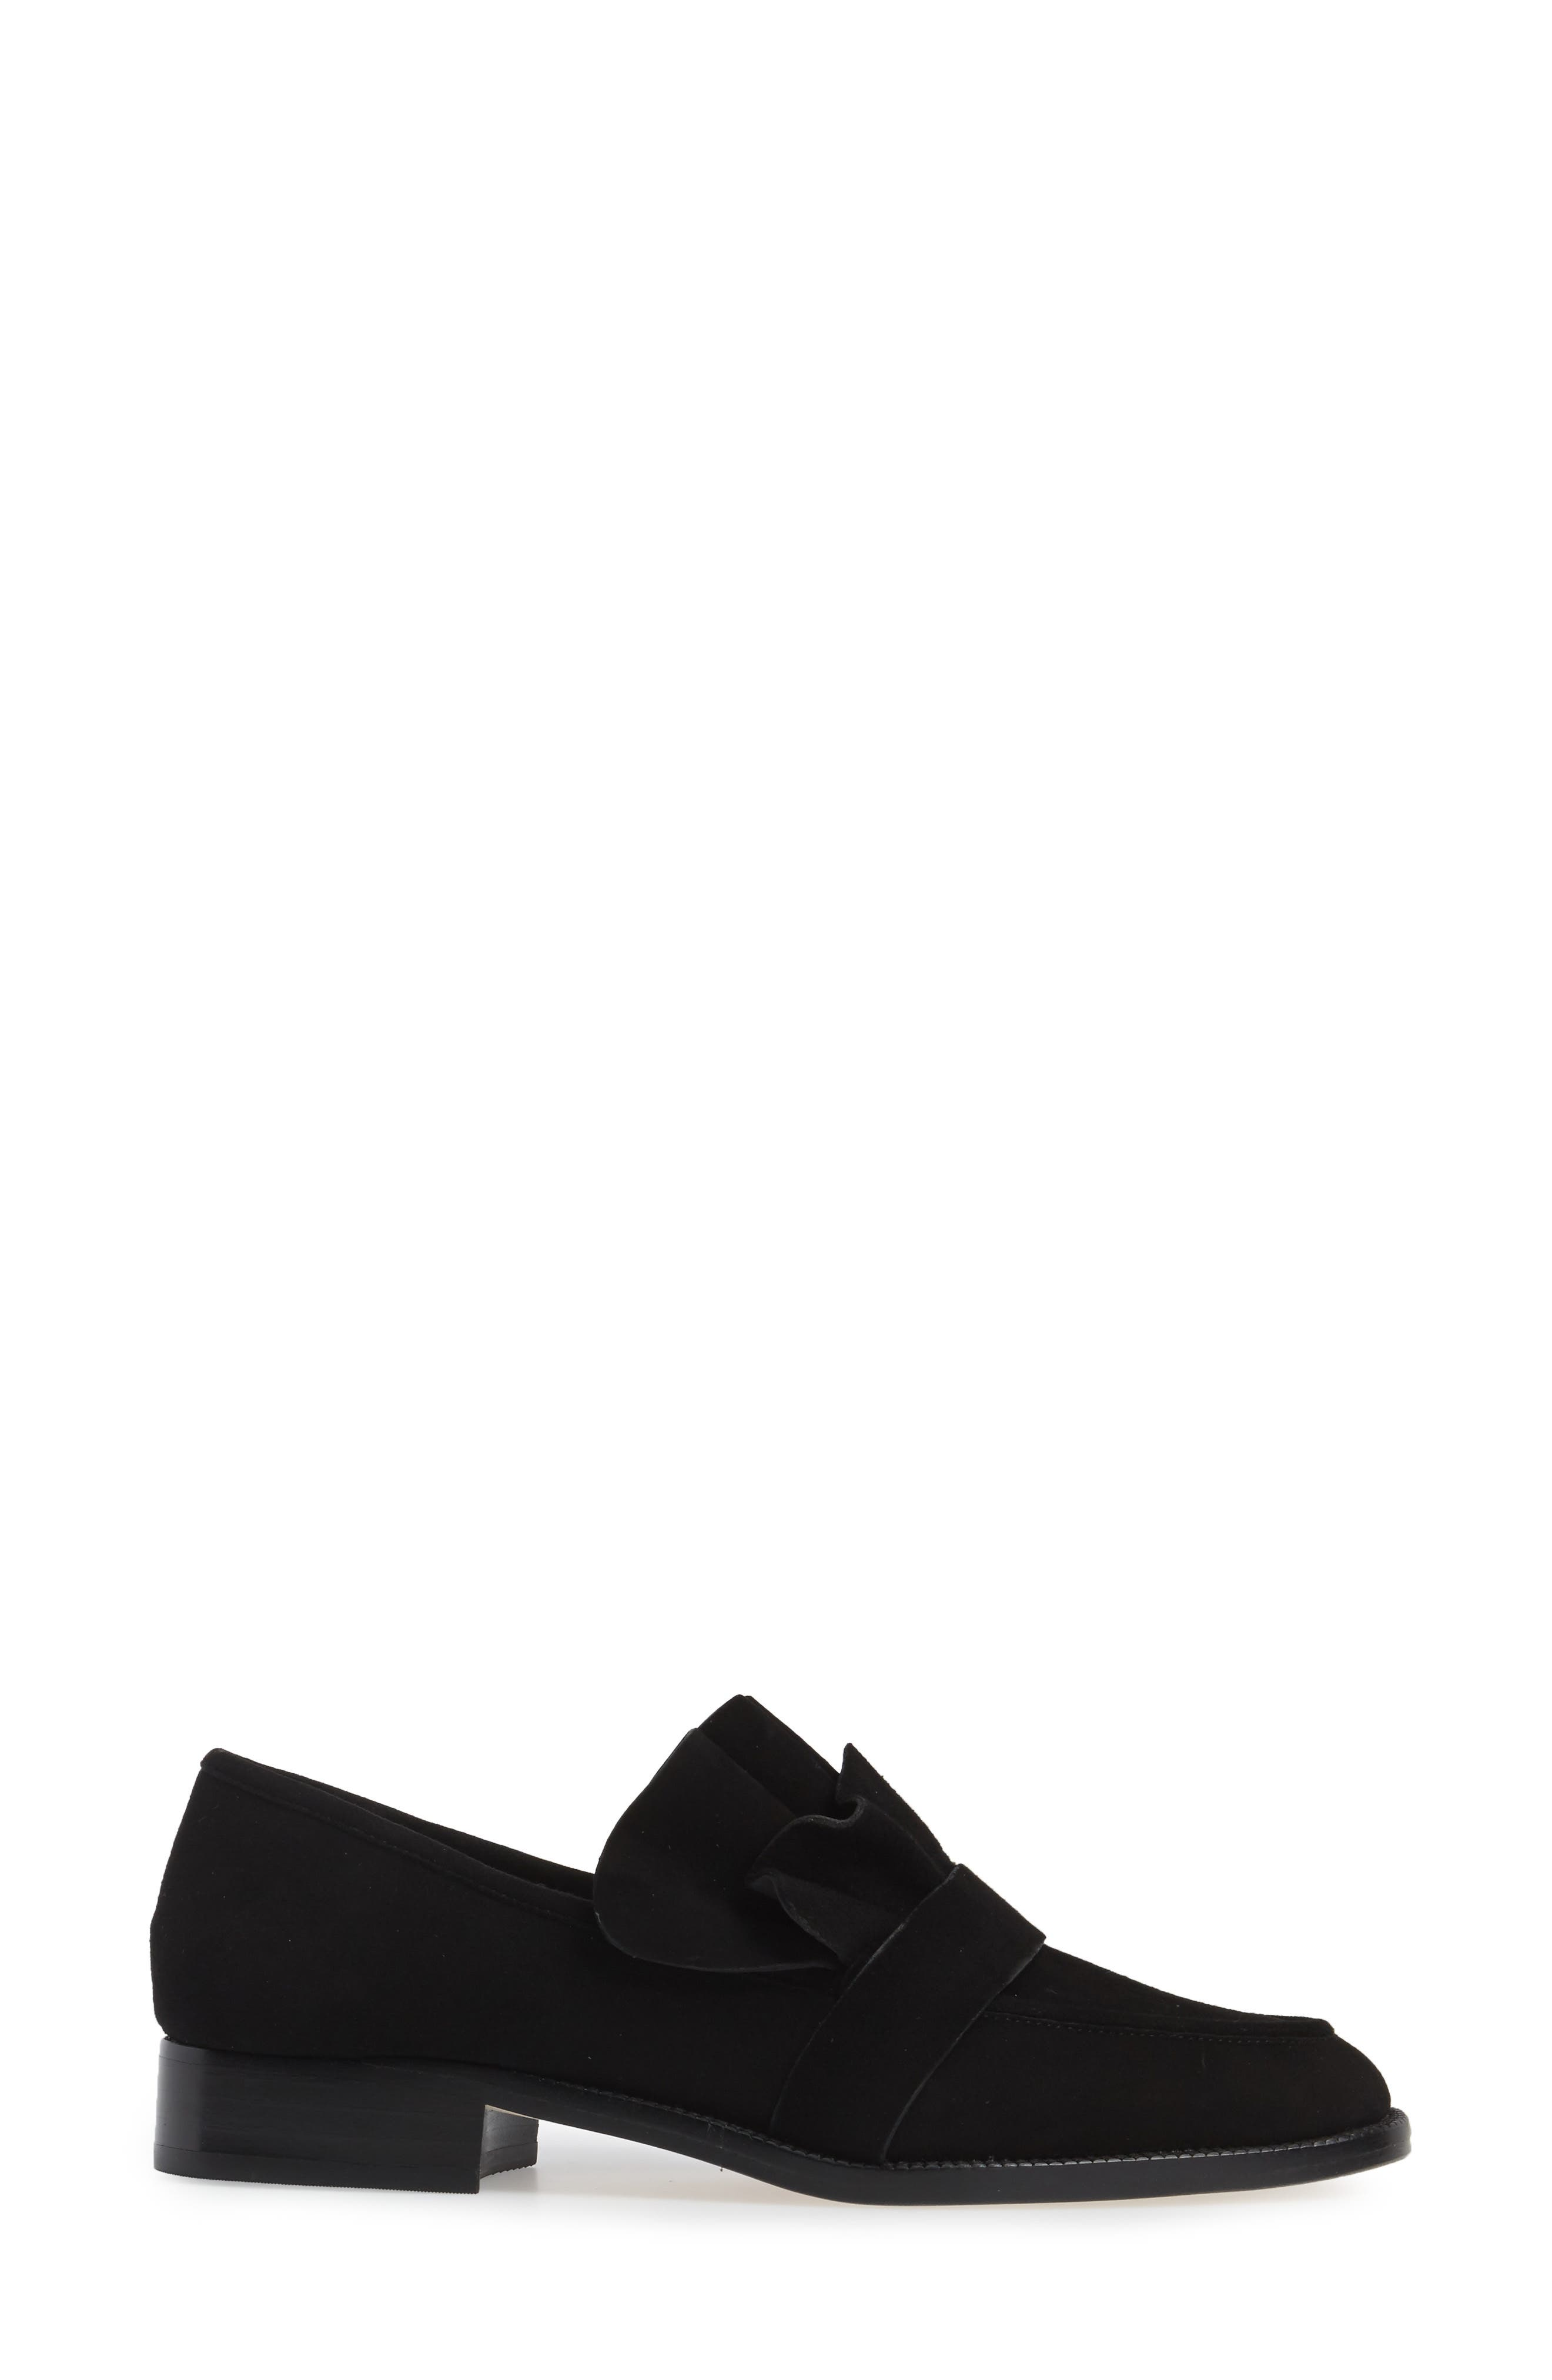 Tenley Ruffled Loafer,                             Alternate thumbnail 10, color,